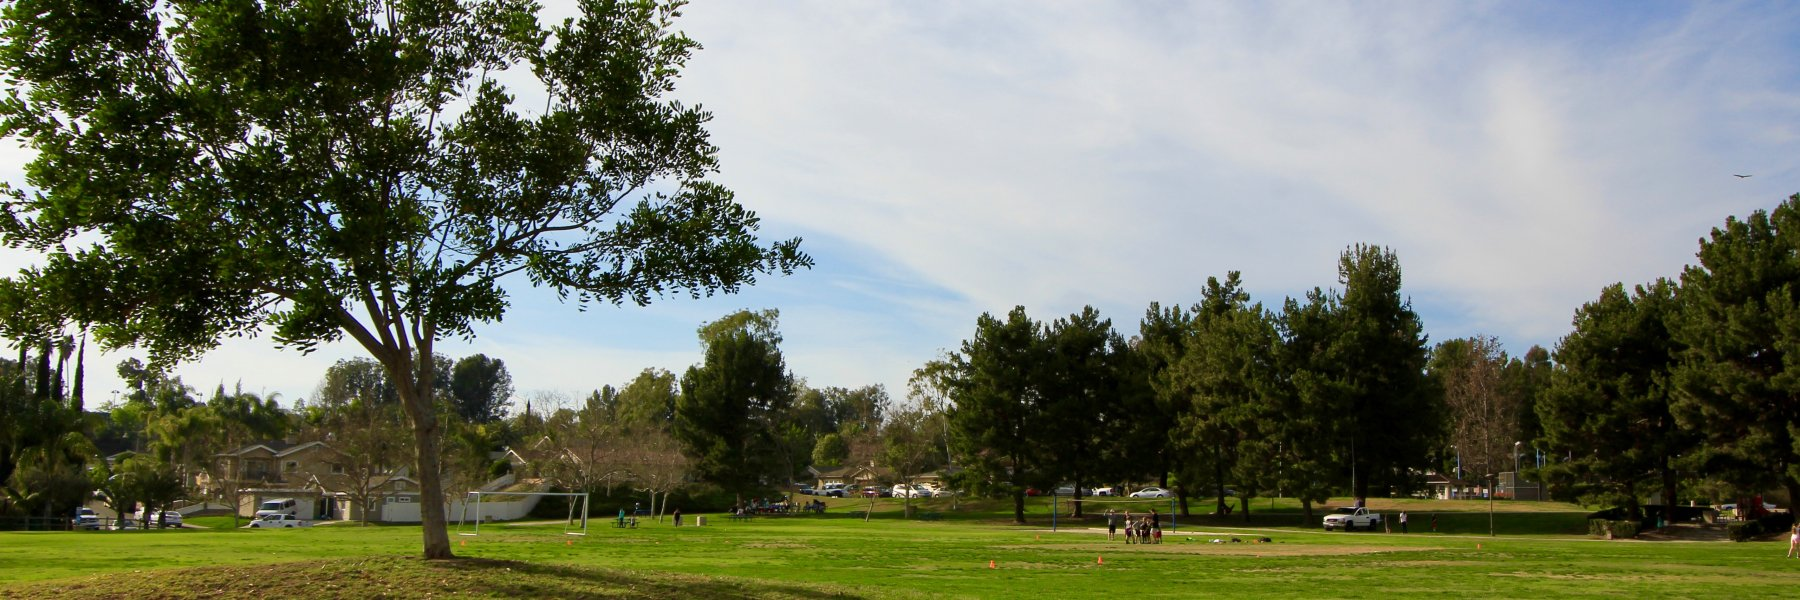 Cordova South is a community of homes in Mission Viejo California